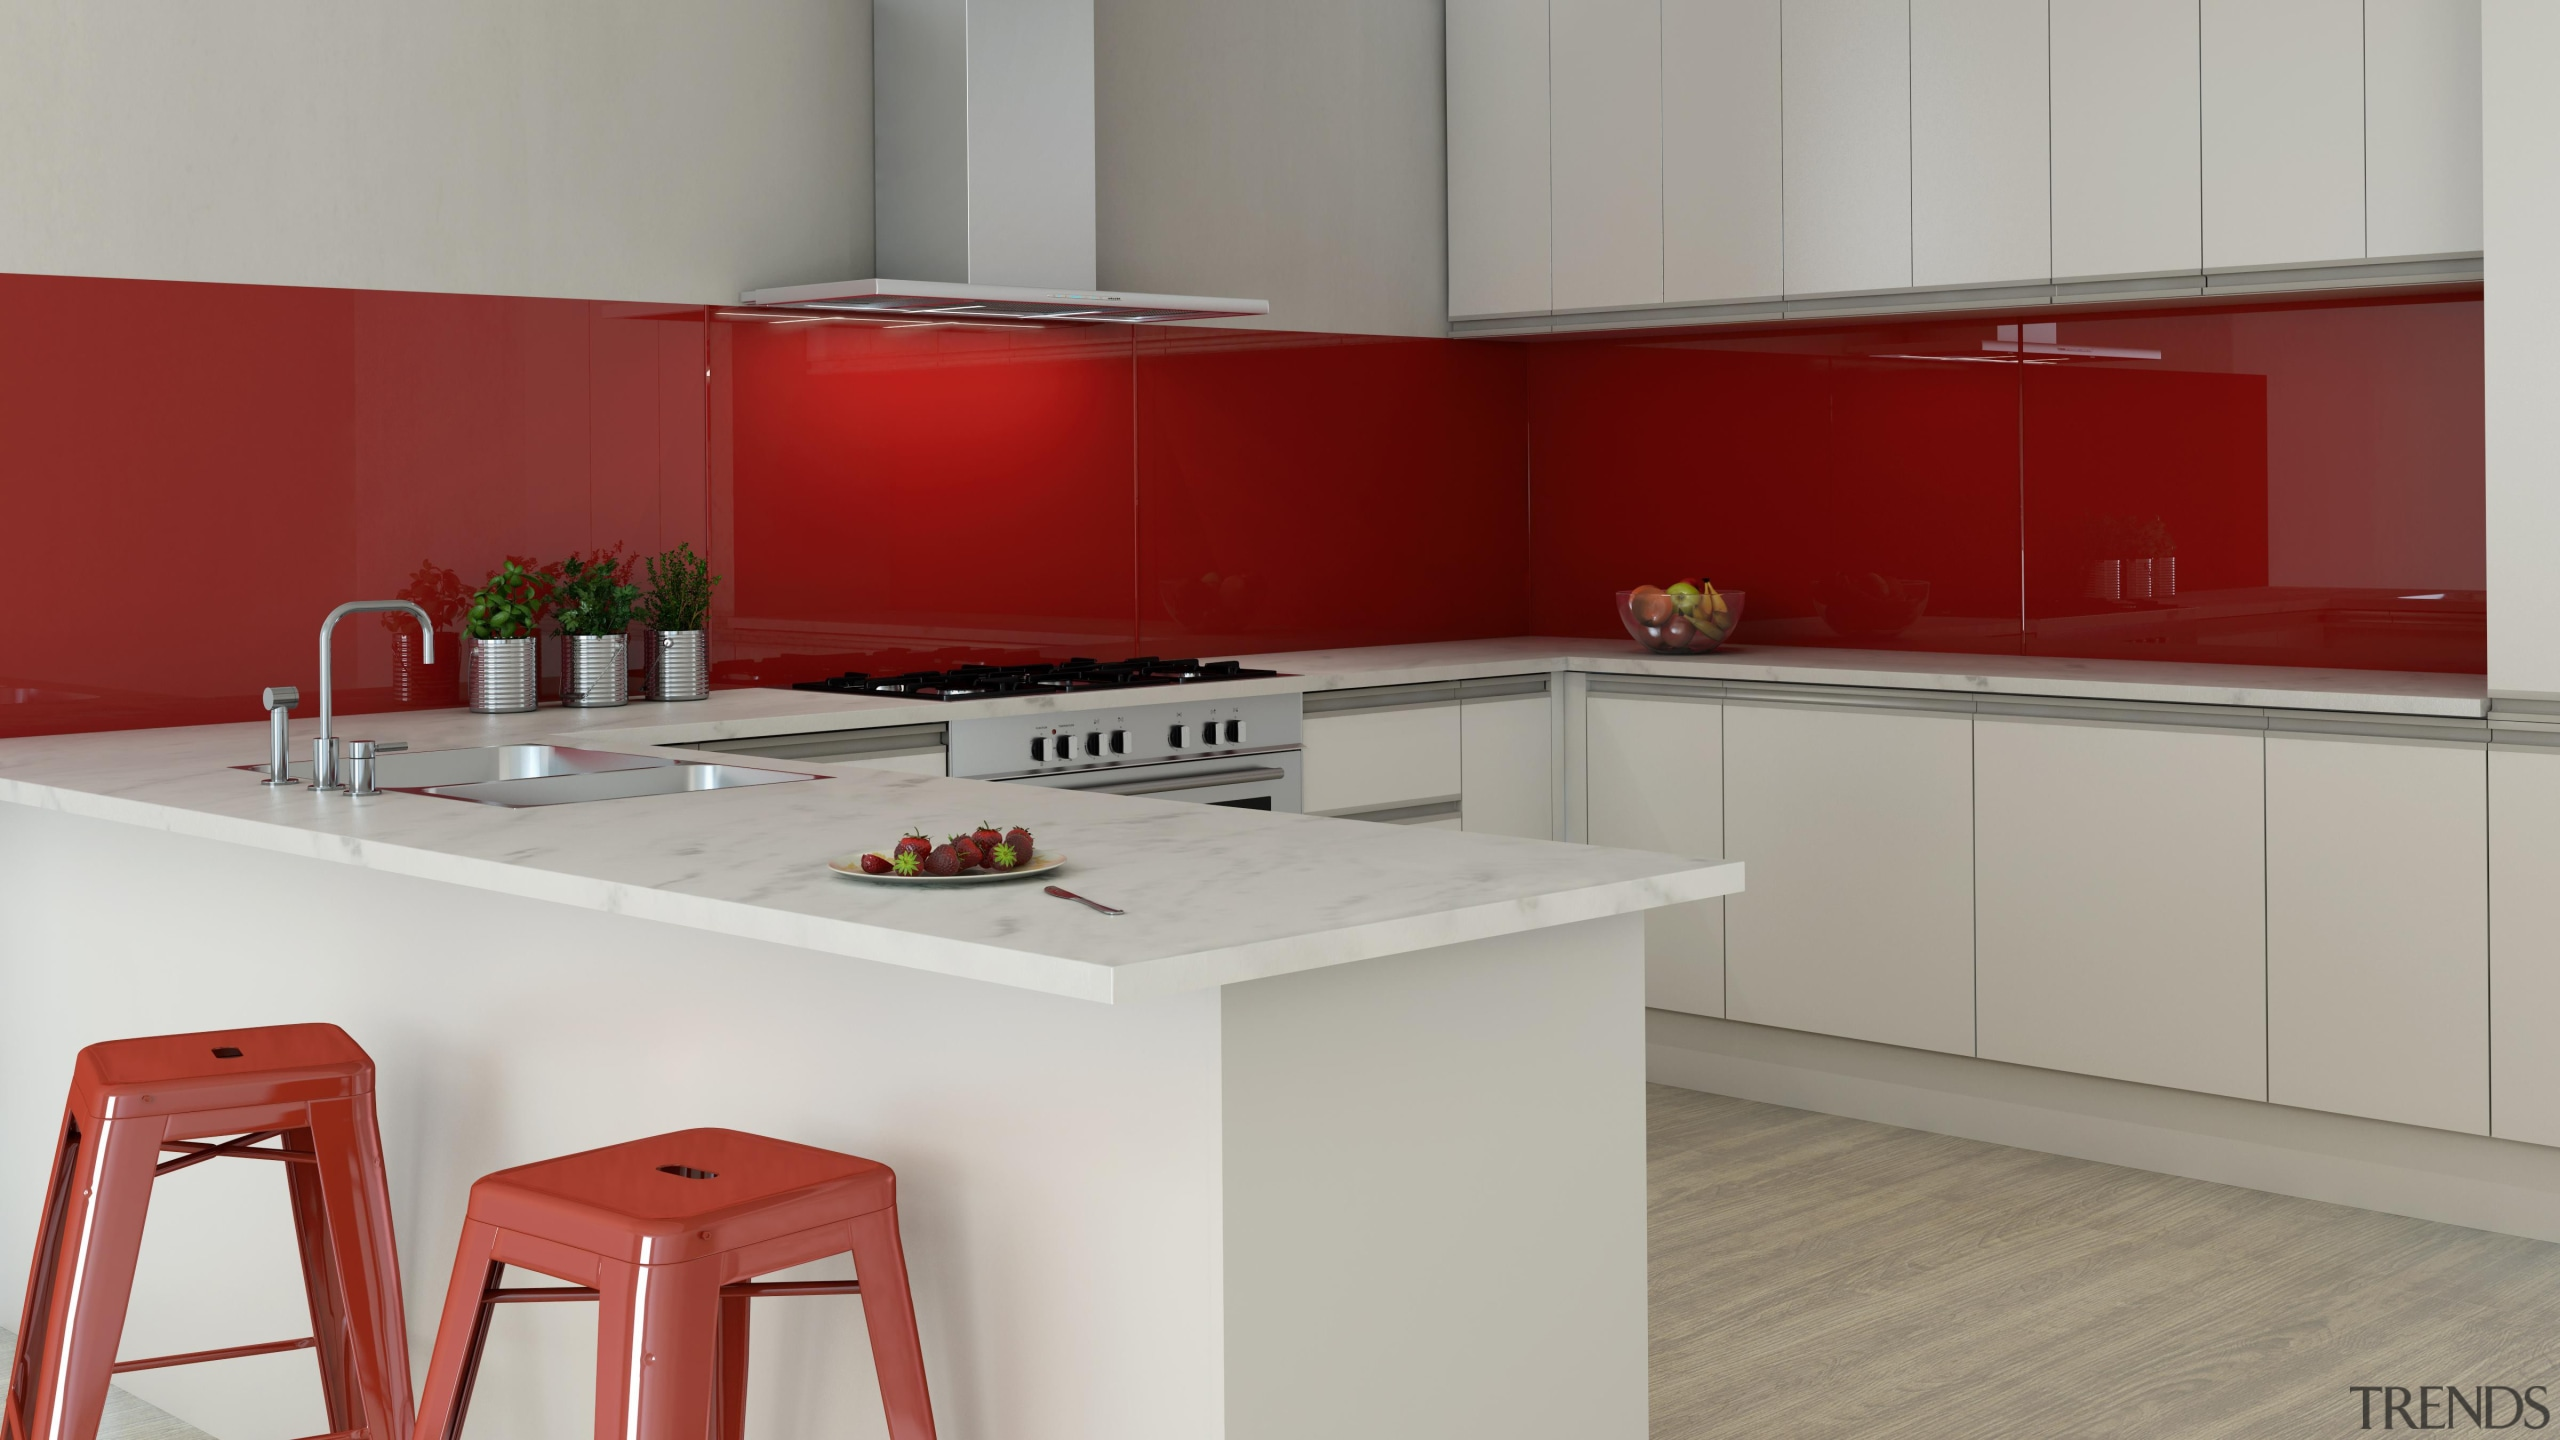 With Seratone Fire in the Disco, this kitchen countertop, interior design, kitchen, product design, table, gray, red